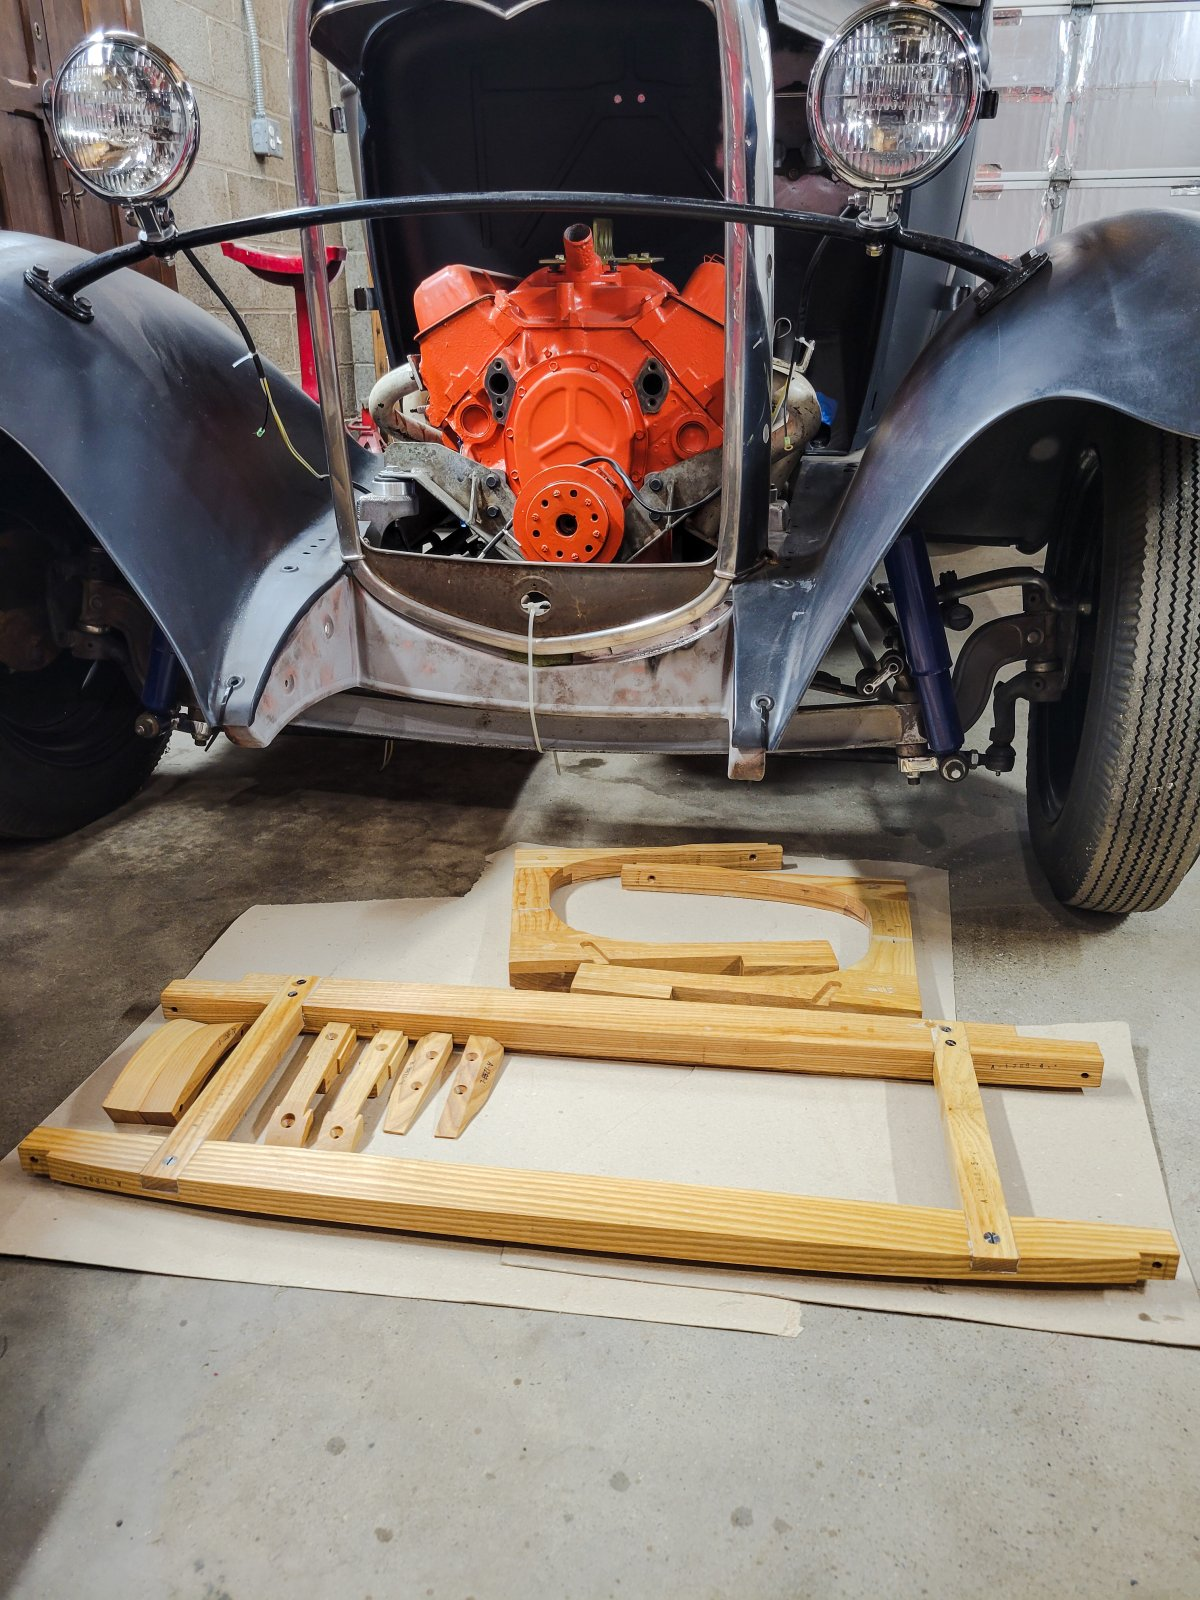 3rd Coat Set Out To Dry Model A Coupe Wood Kit .jpg